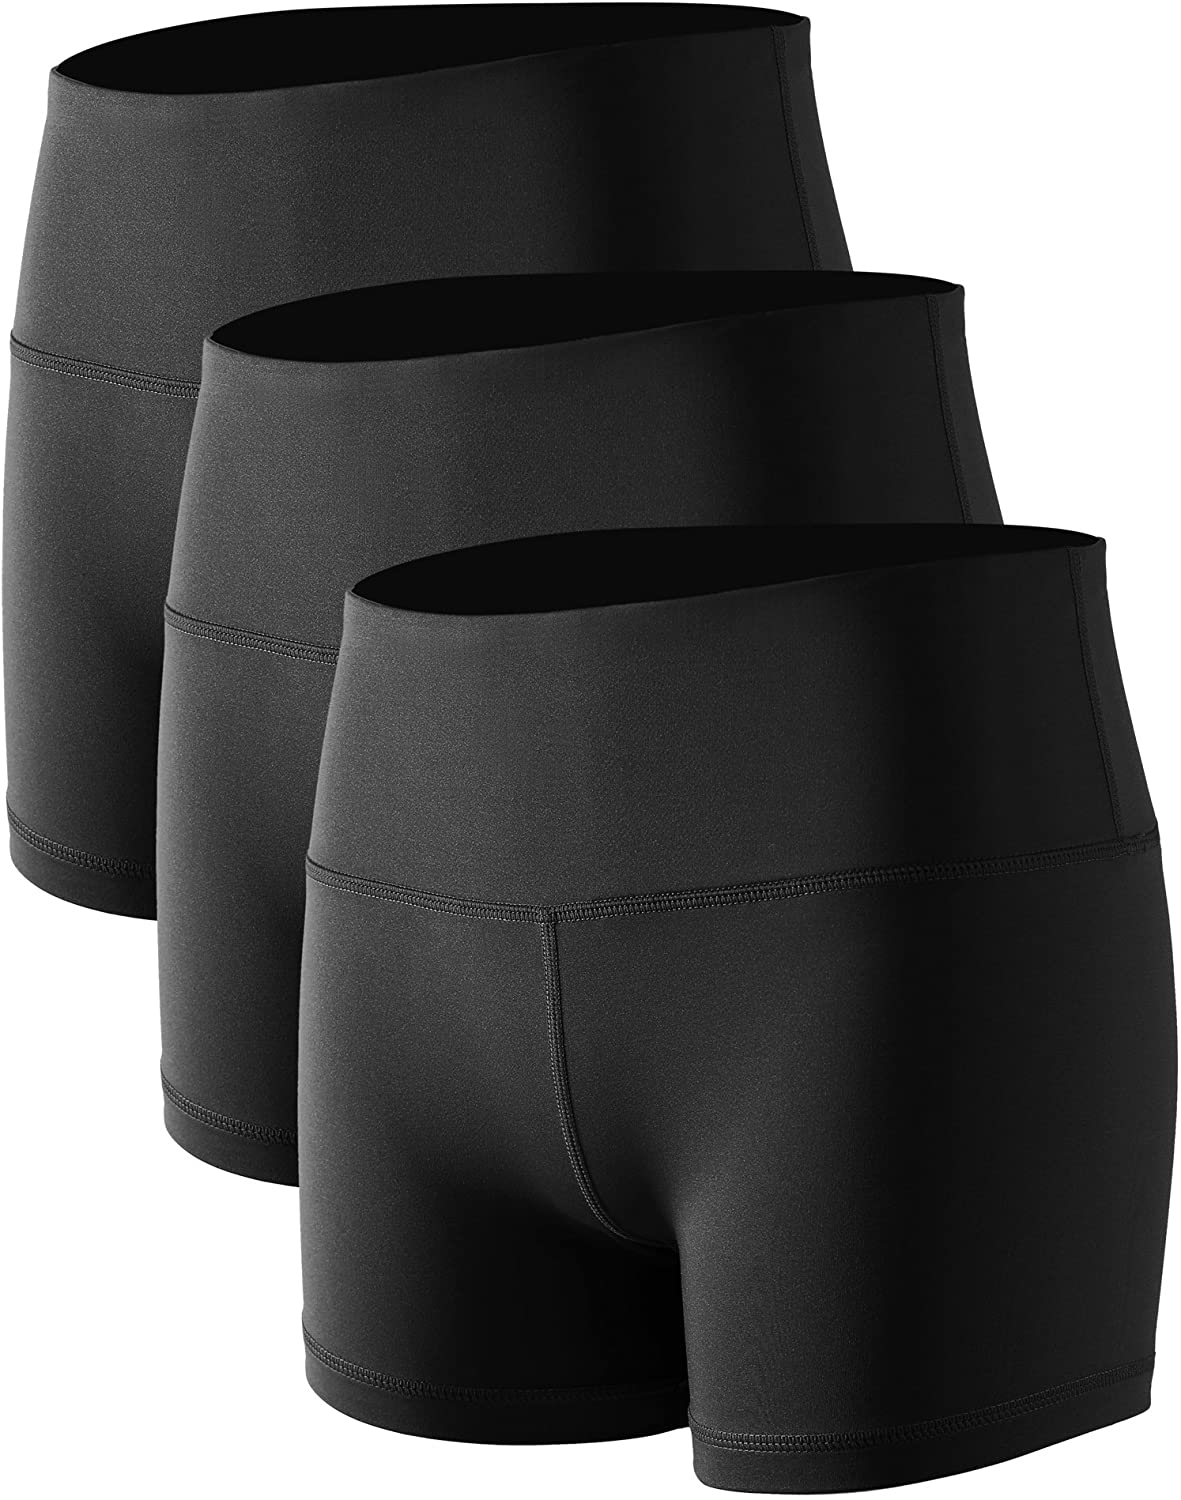 Cadmus Women's High Waist Stretch Athletic Workout Shorts with Pocket: Clothing